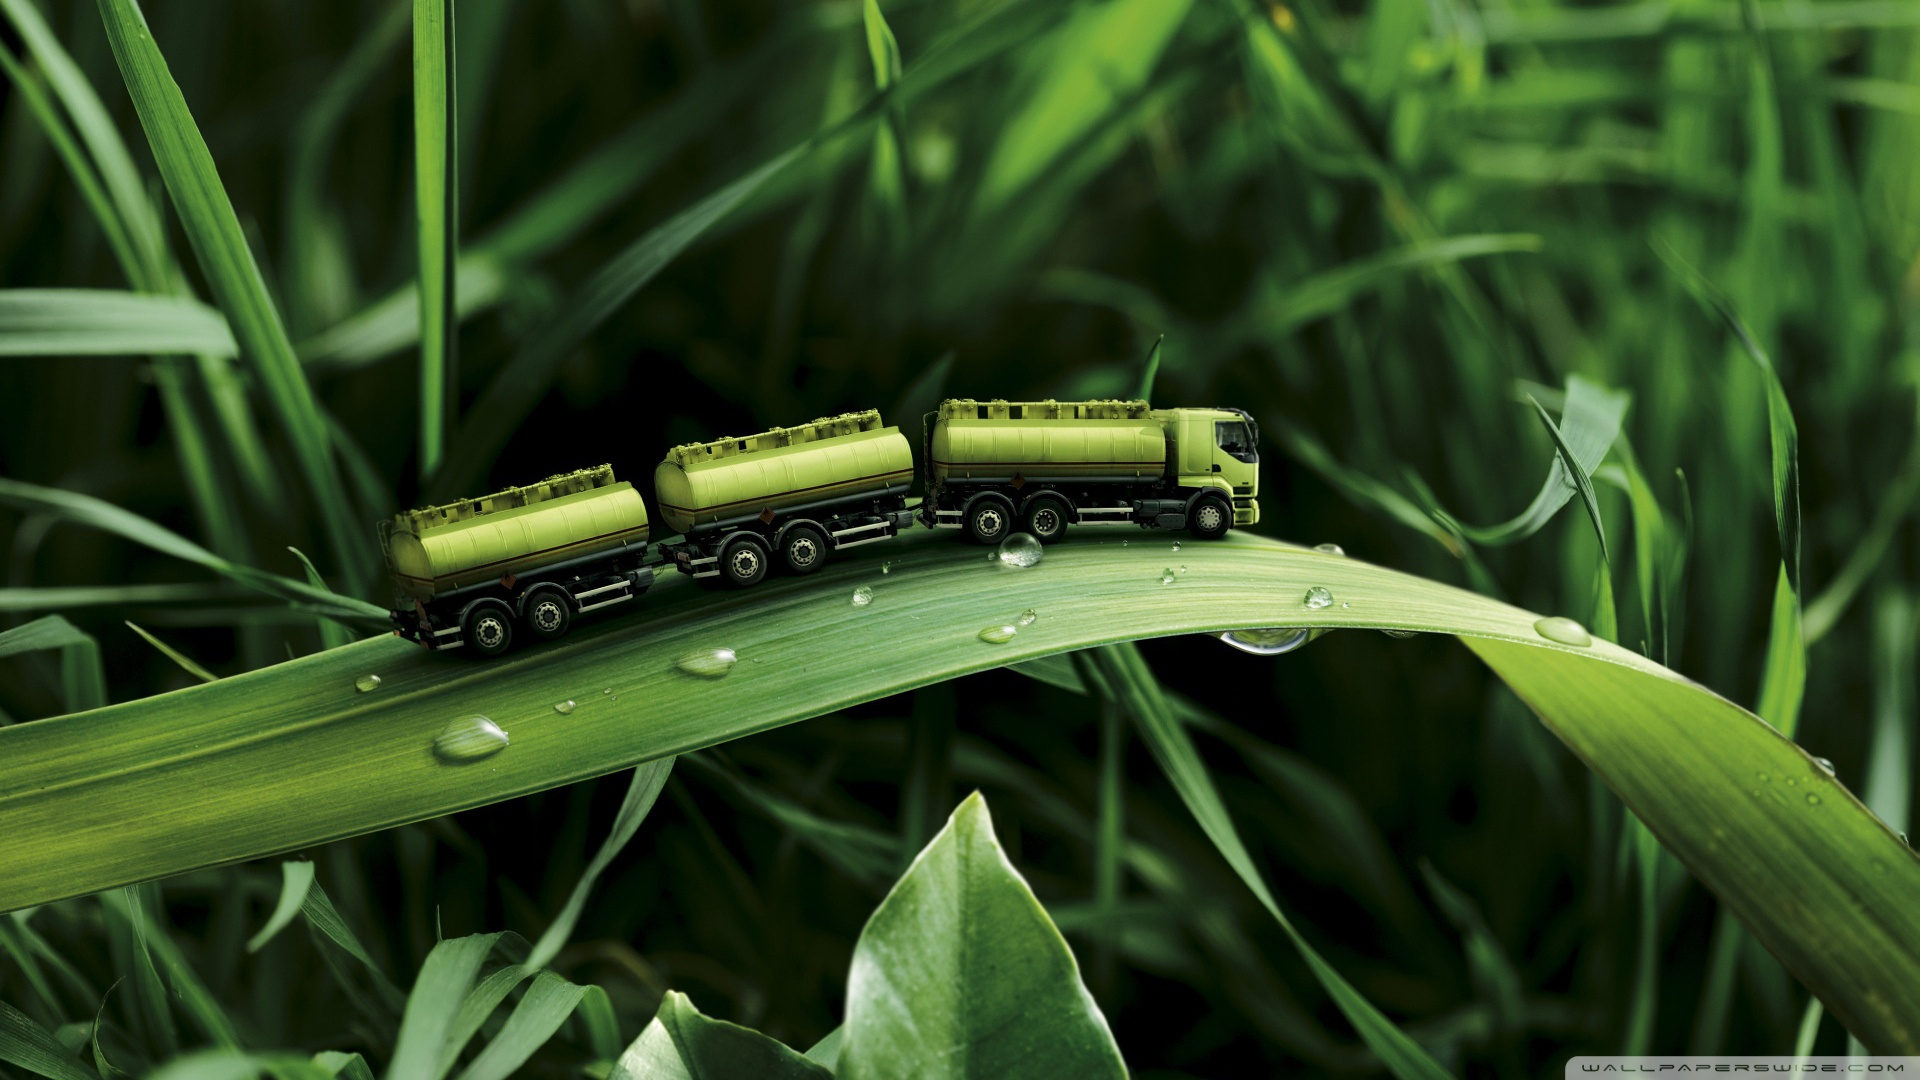 Green Truck On A Leaf Wallpaper Hd Wallpapers Hd Backgrounds Tumblr Backgrounds Images Pictures